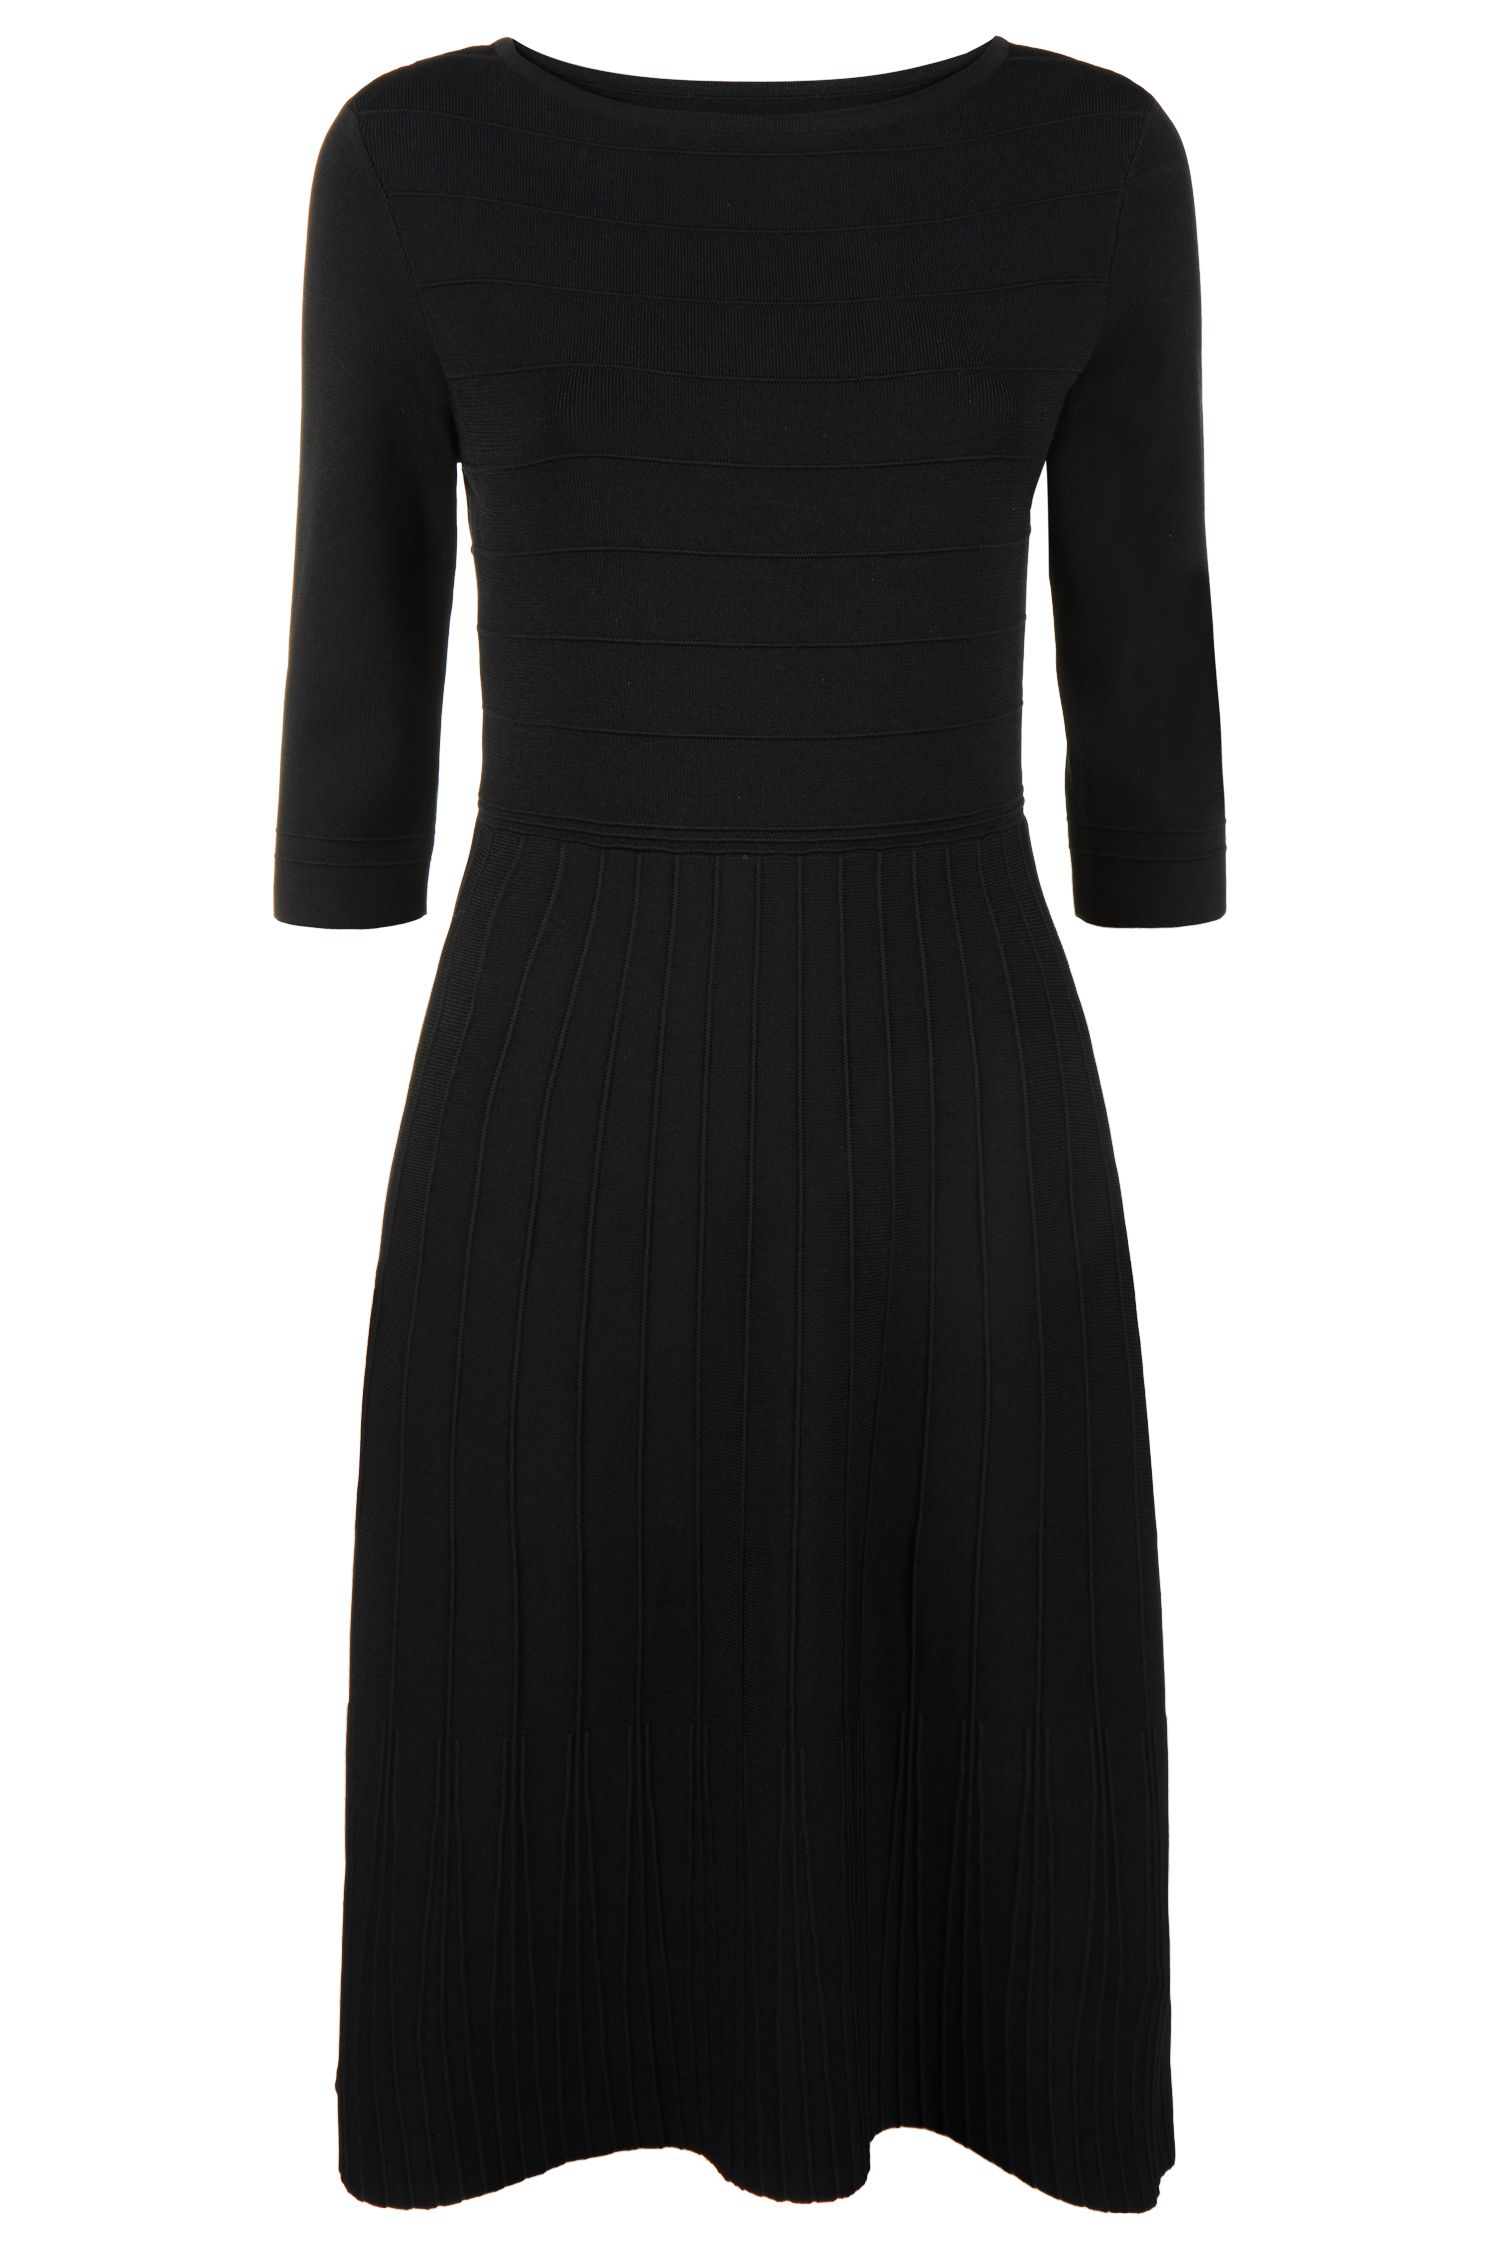 Fenn Wright Manson Mercury Dress, Black